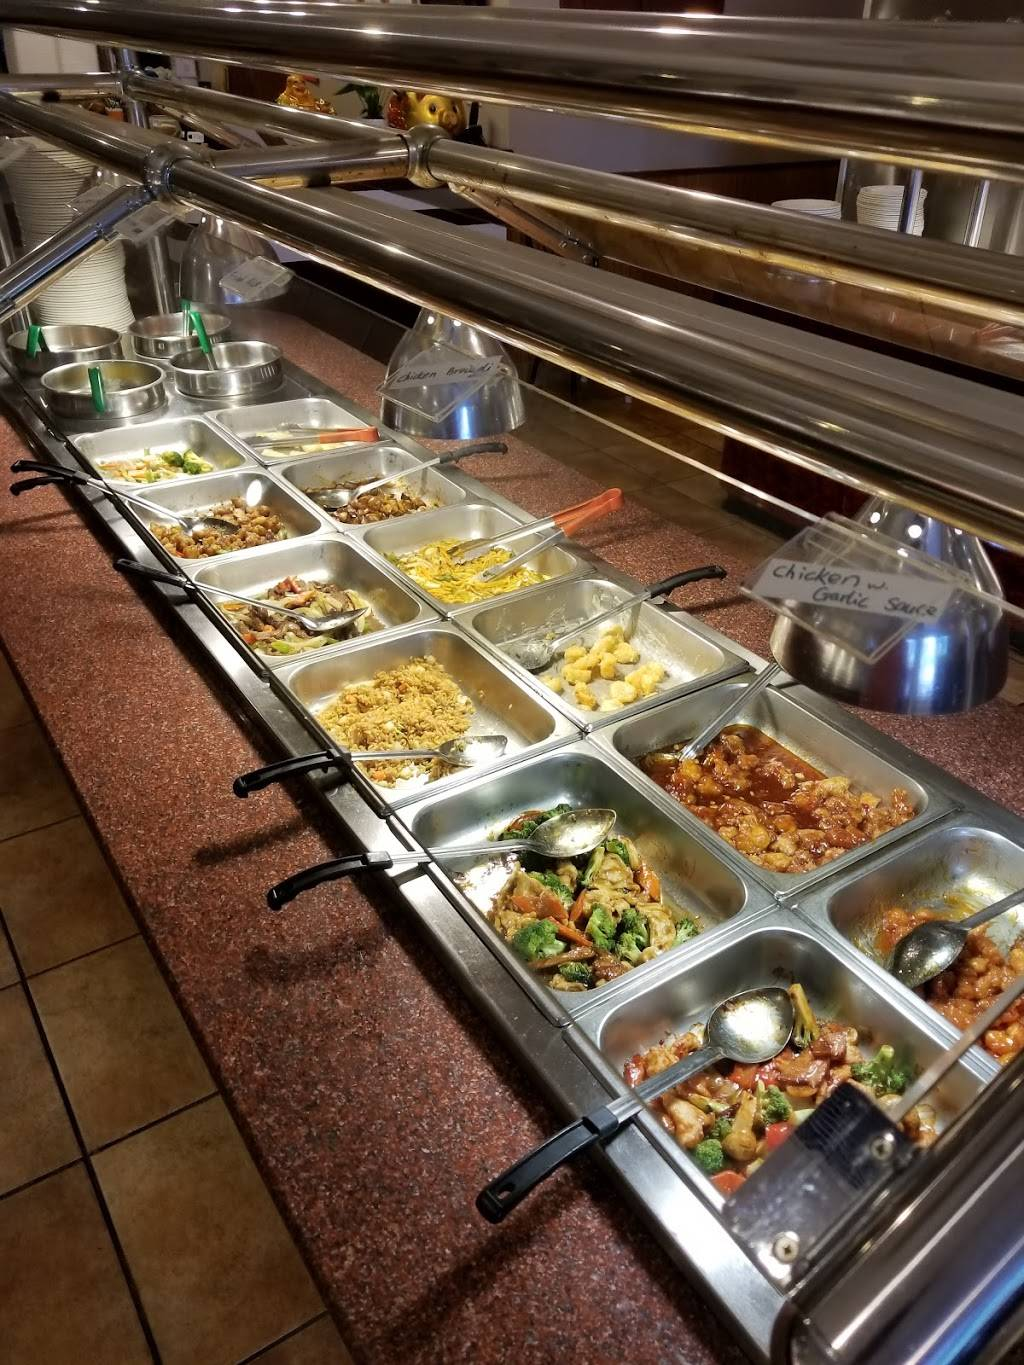 China One Buffet | meal takeaway | 1210 N Bequette St, Dodgeville, WI 53533, USA | 6083192666 OR +1 608-319-2666